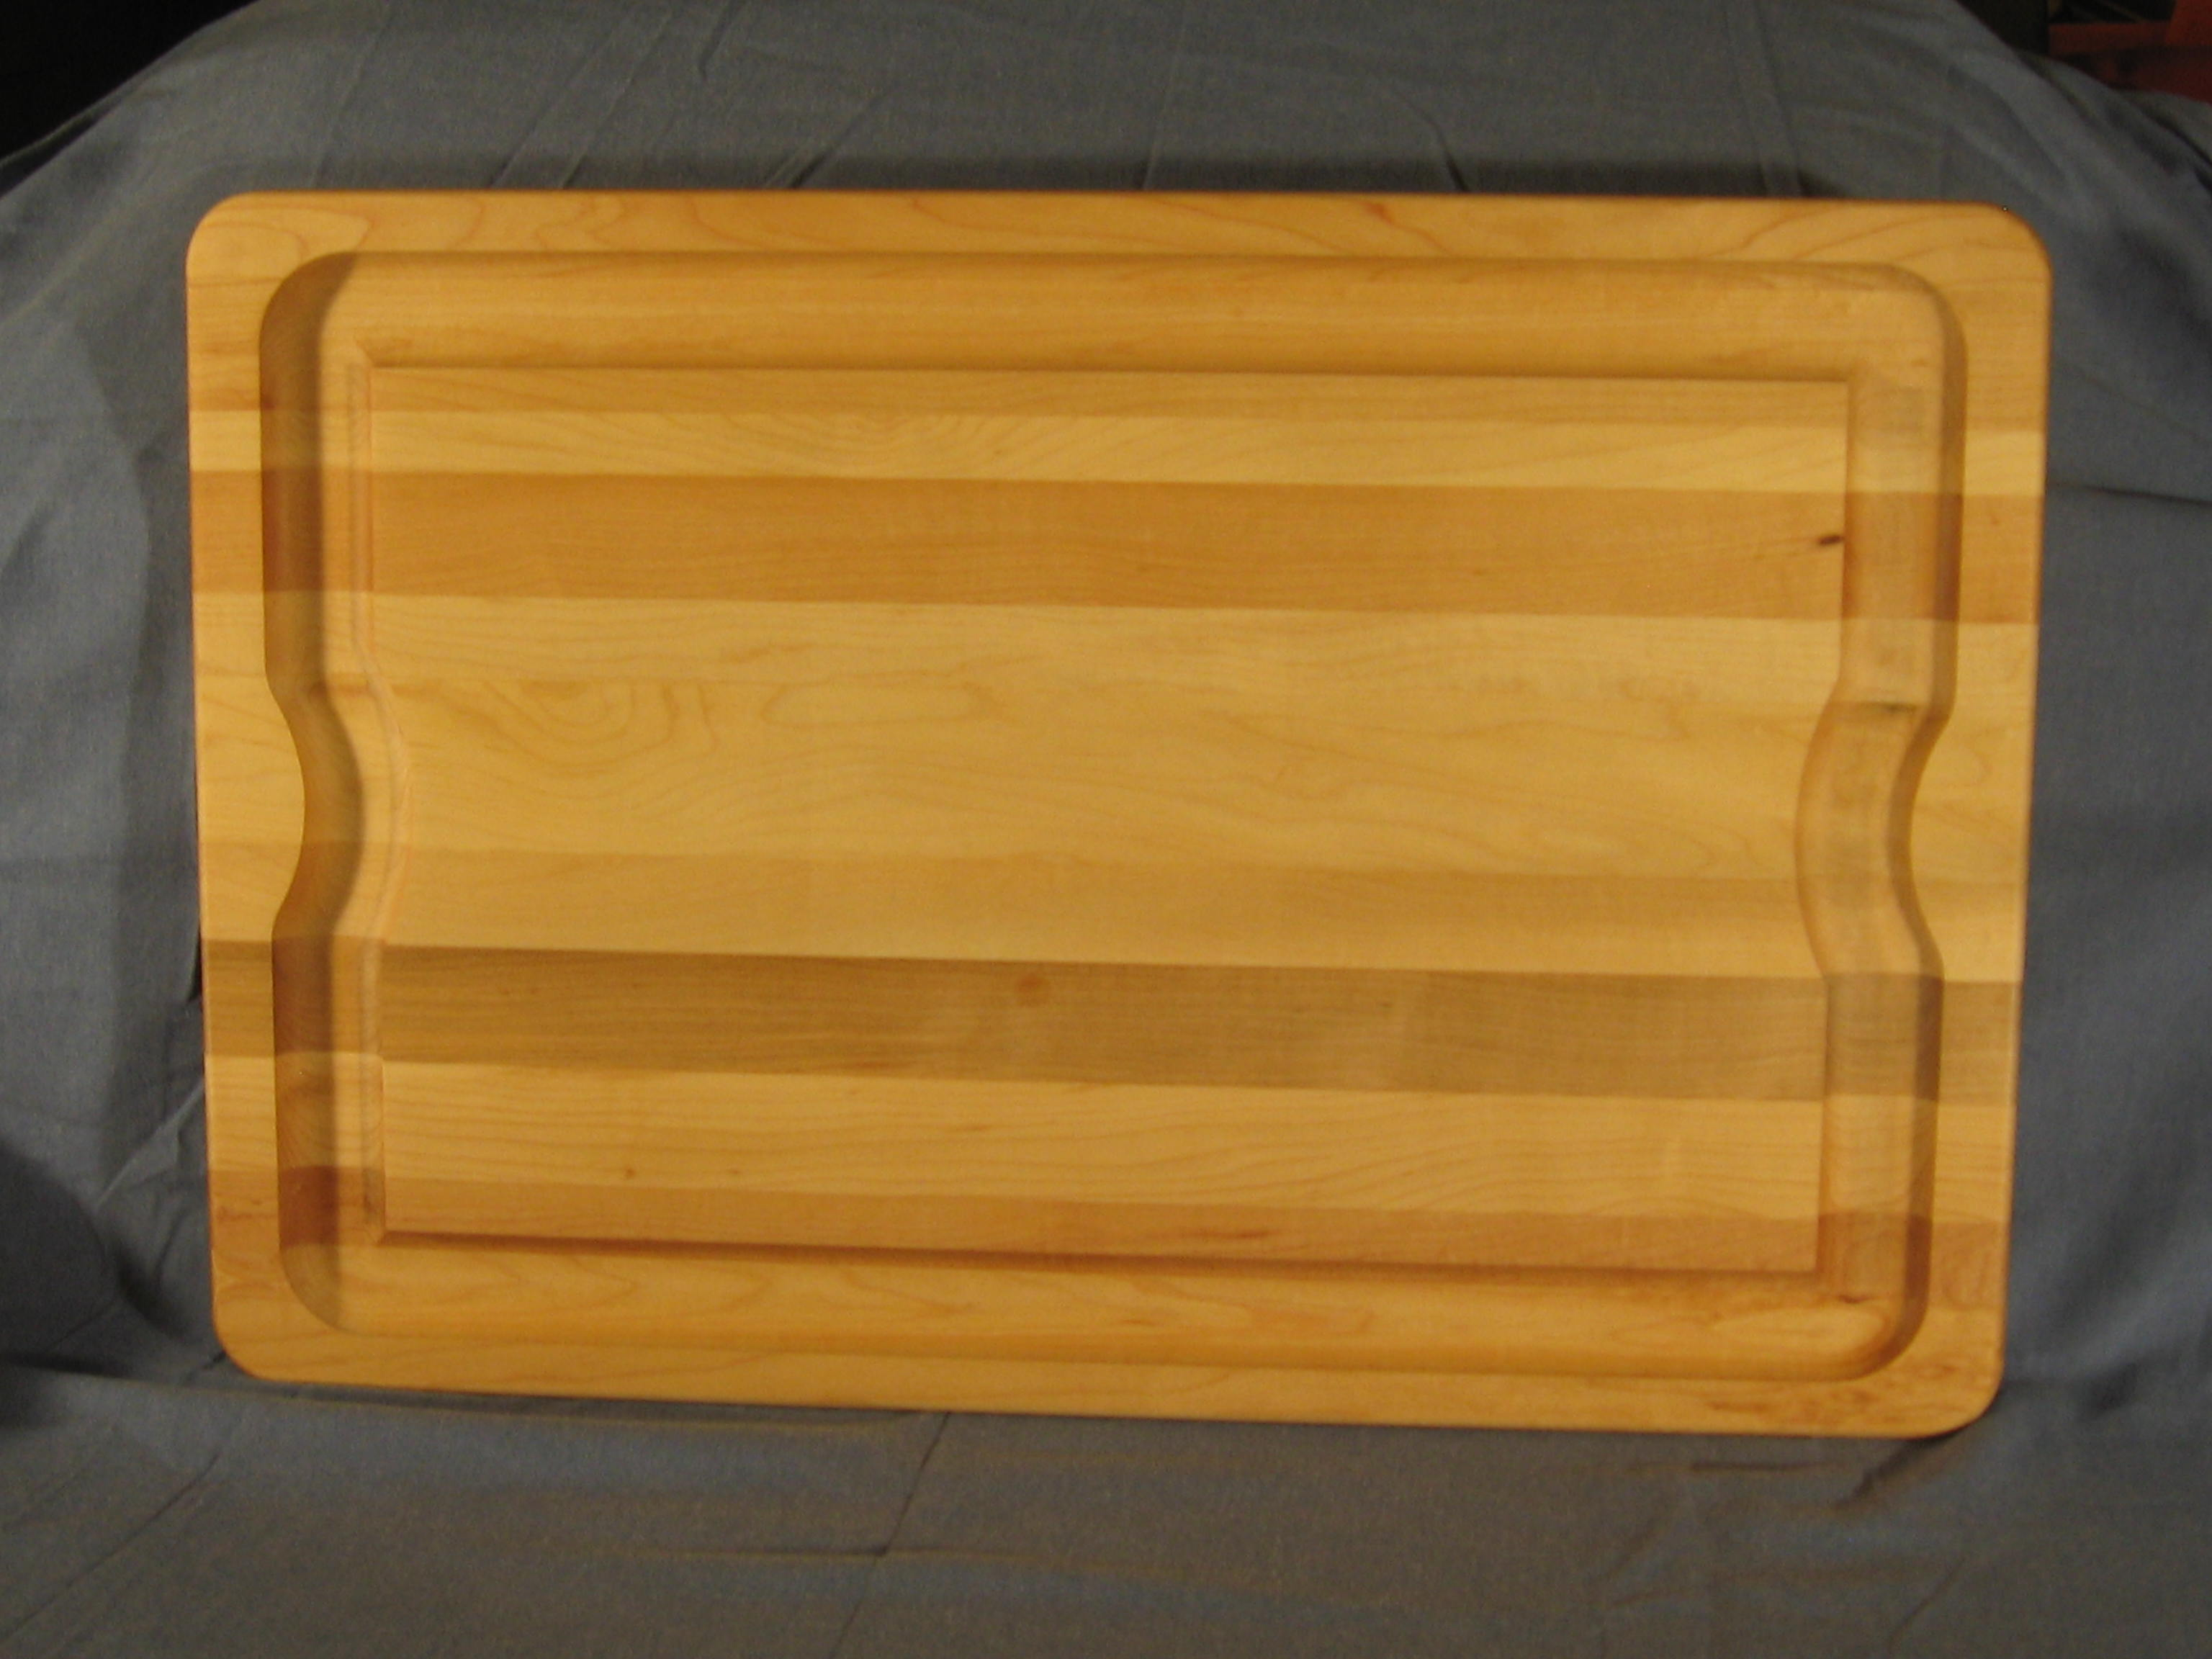 j k adams cutting boards  wood bowls made in vermont, bowl mill, Kitchen design